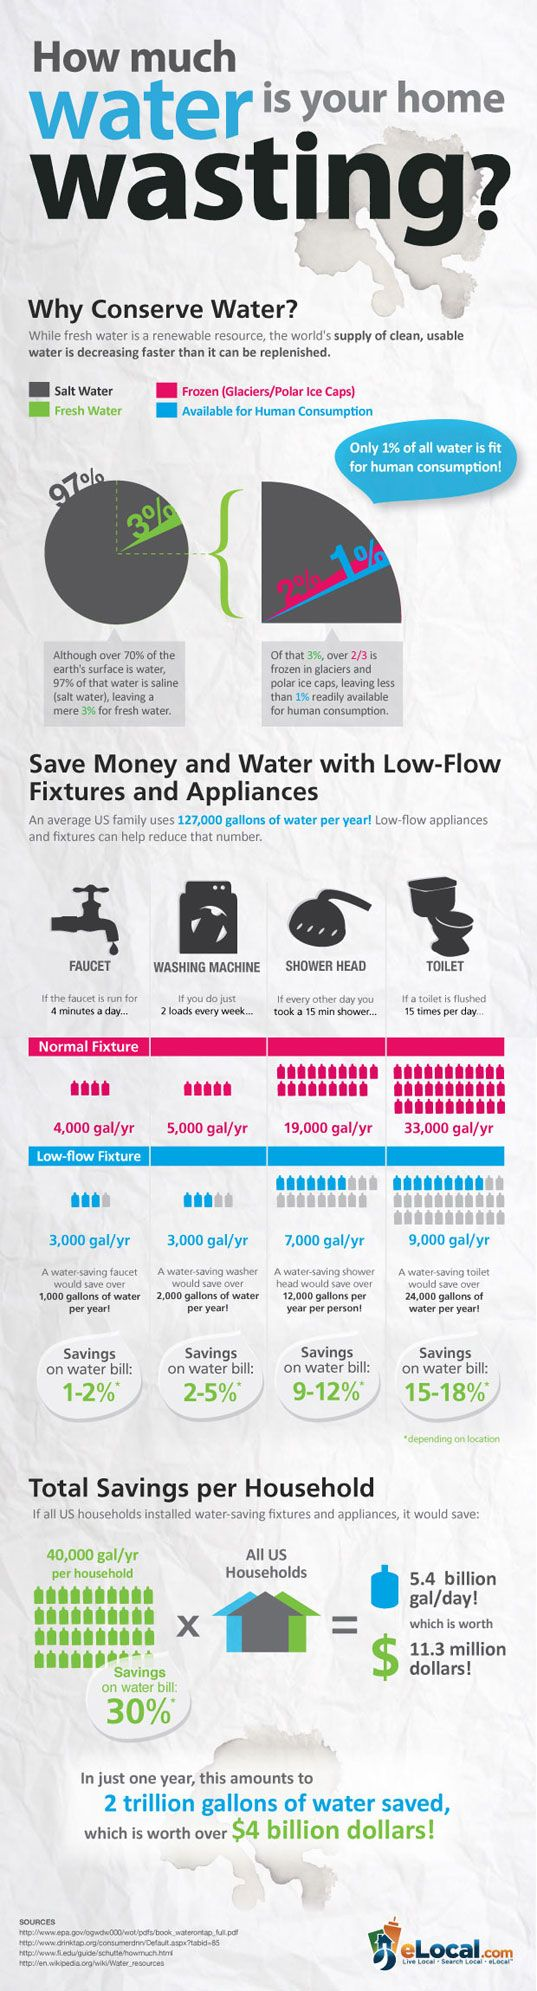 How much water is your home wasting, water issues, water conservation, water, elocal, residential water usage